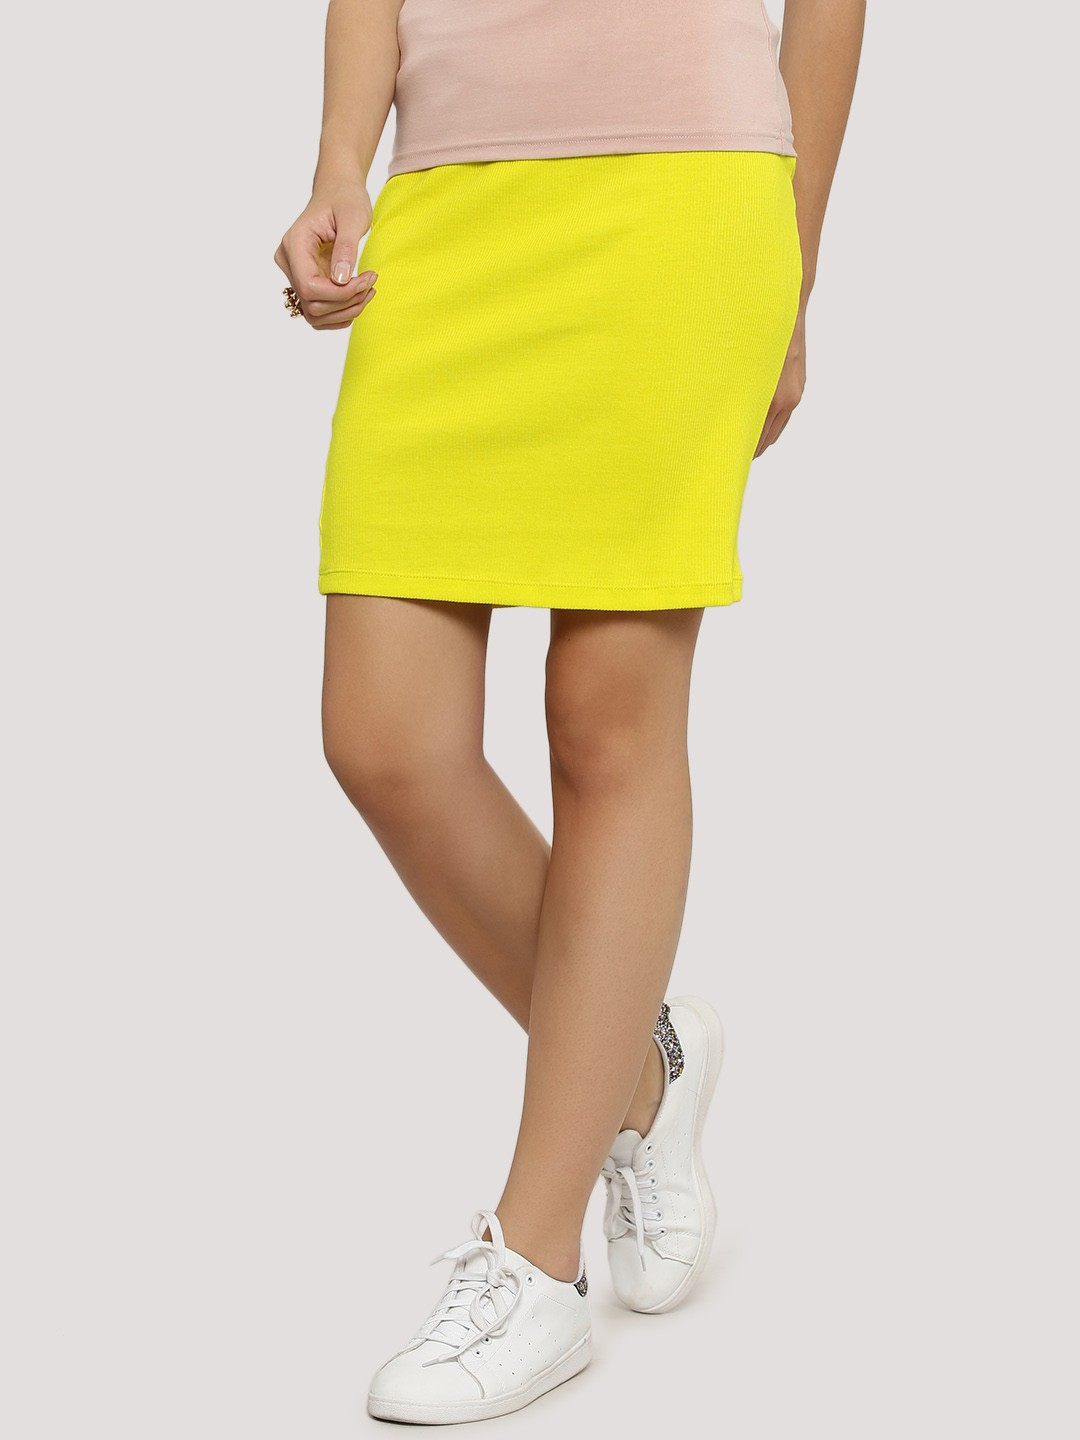 Buy Women Pencil Skirts Online In India At appzdnatw.cf Select From A Large Variety Of Pencil Skirts For Women & Girls And Get Free Shipping, Cash On Delivery & Easy Return.